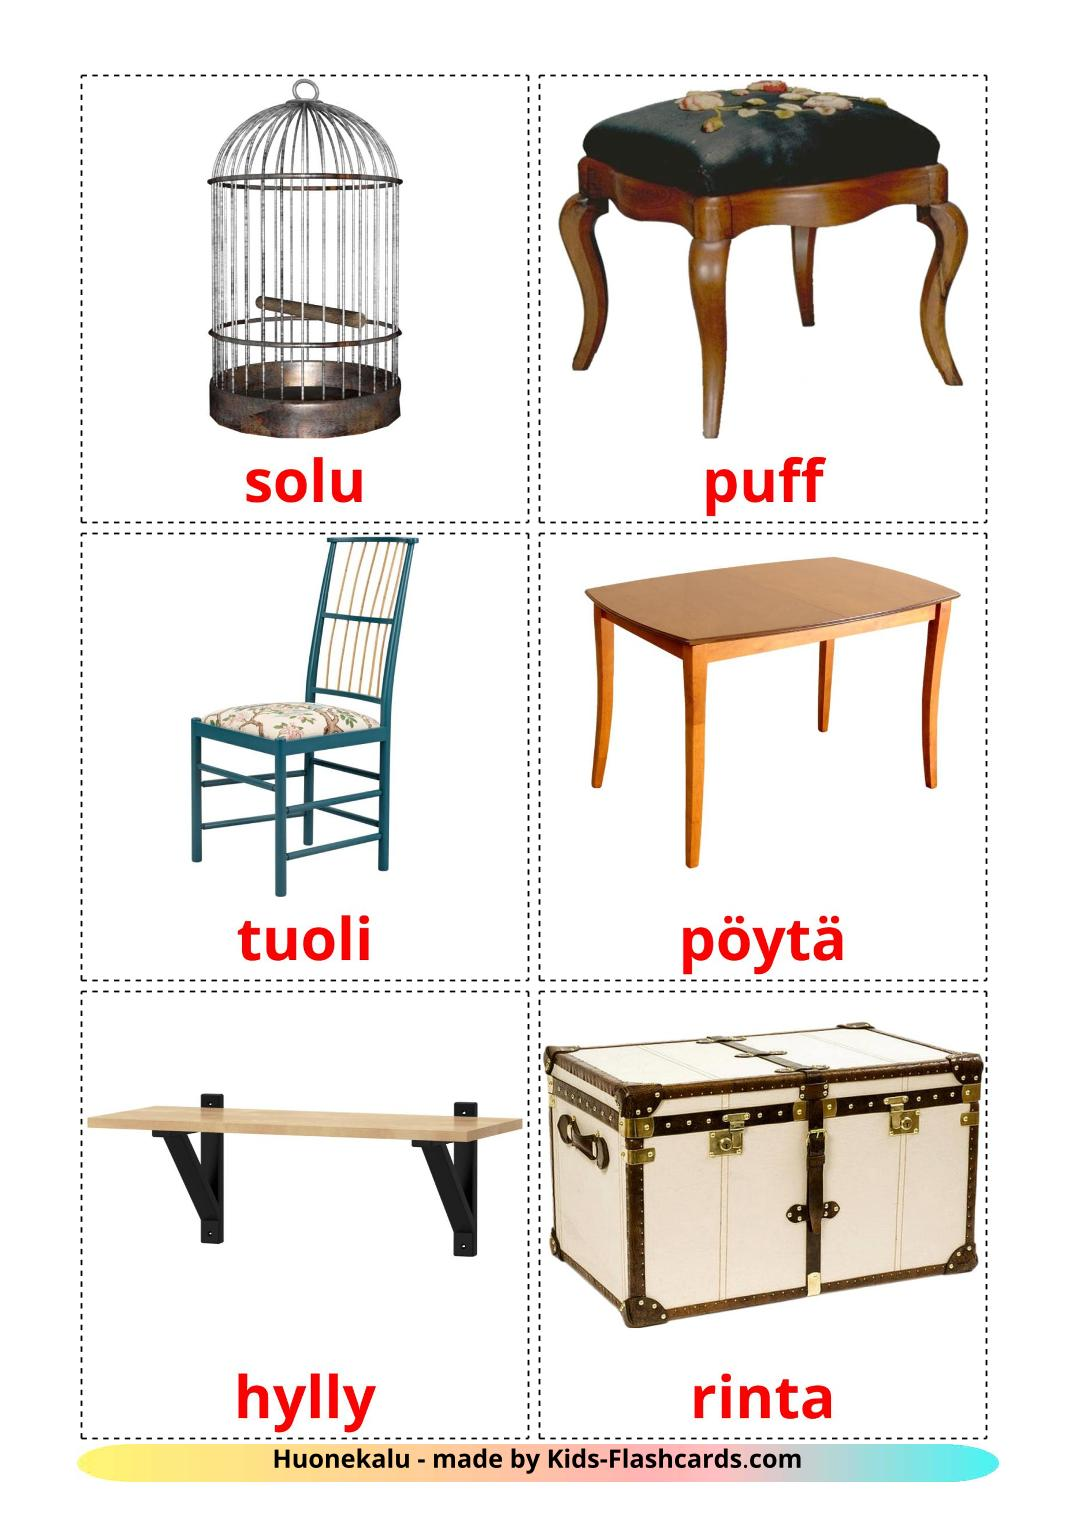 Furniture picture cards for Kindergarden in finnish